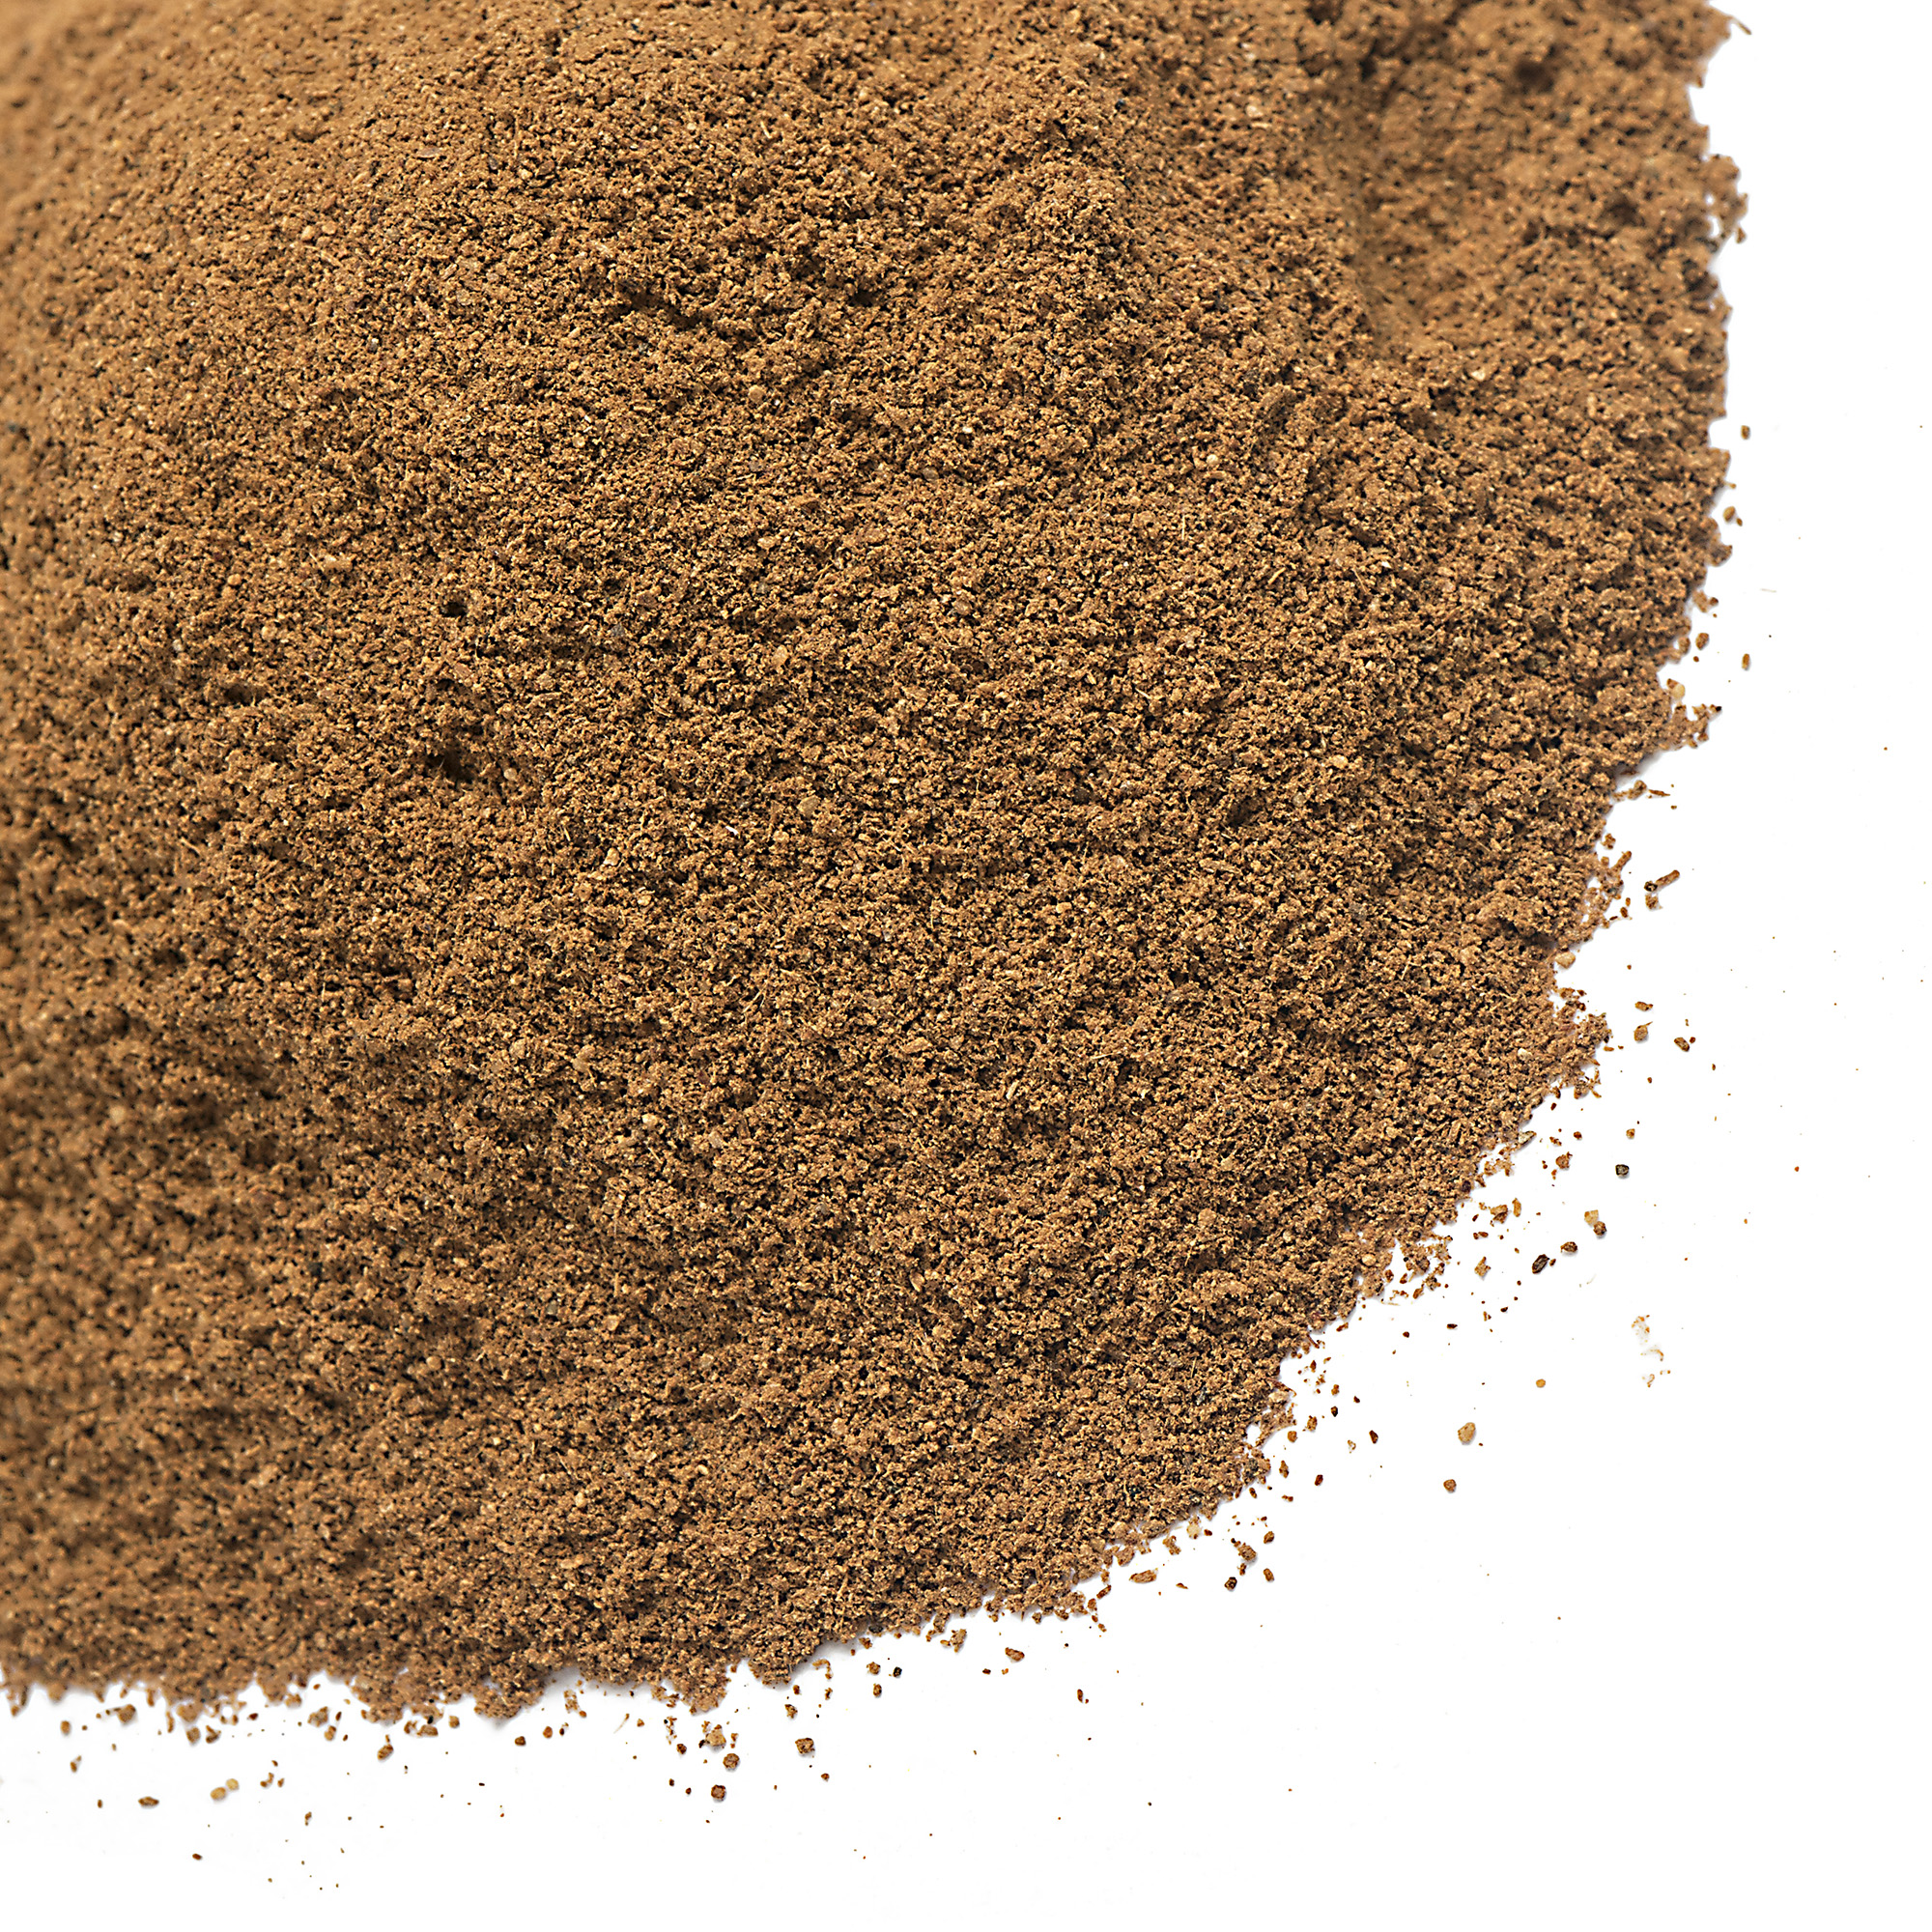 CINNAMON-POWDER-B